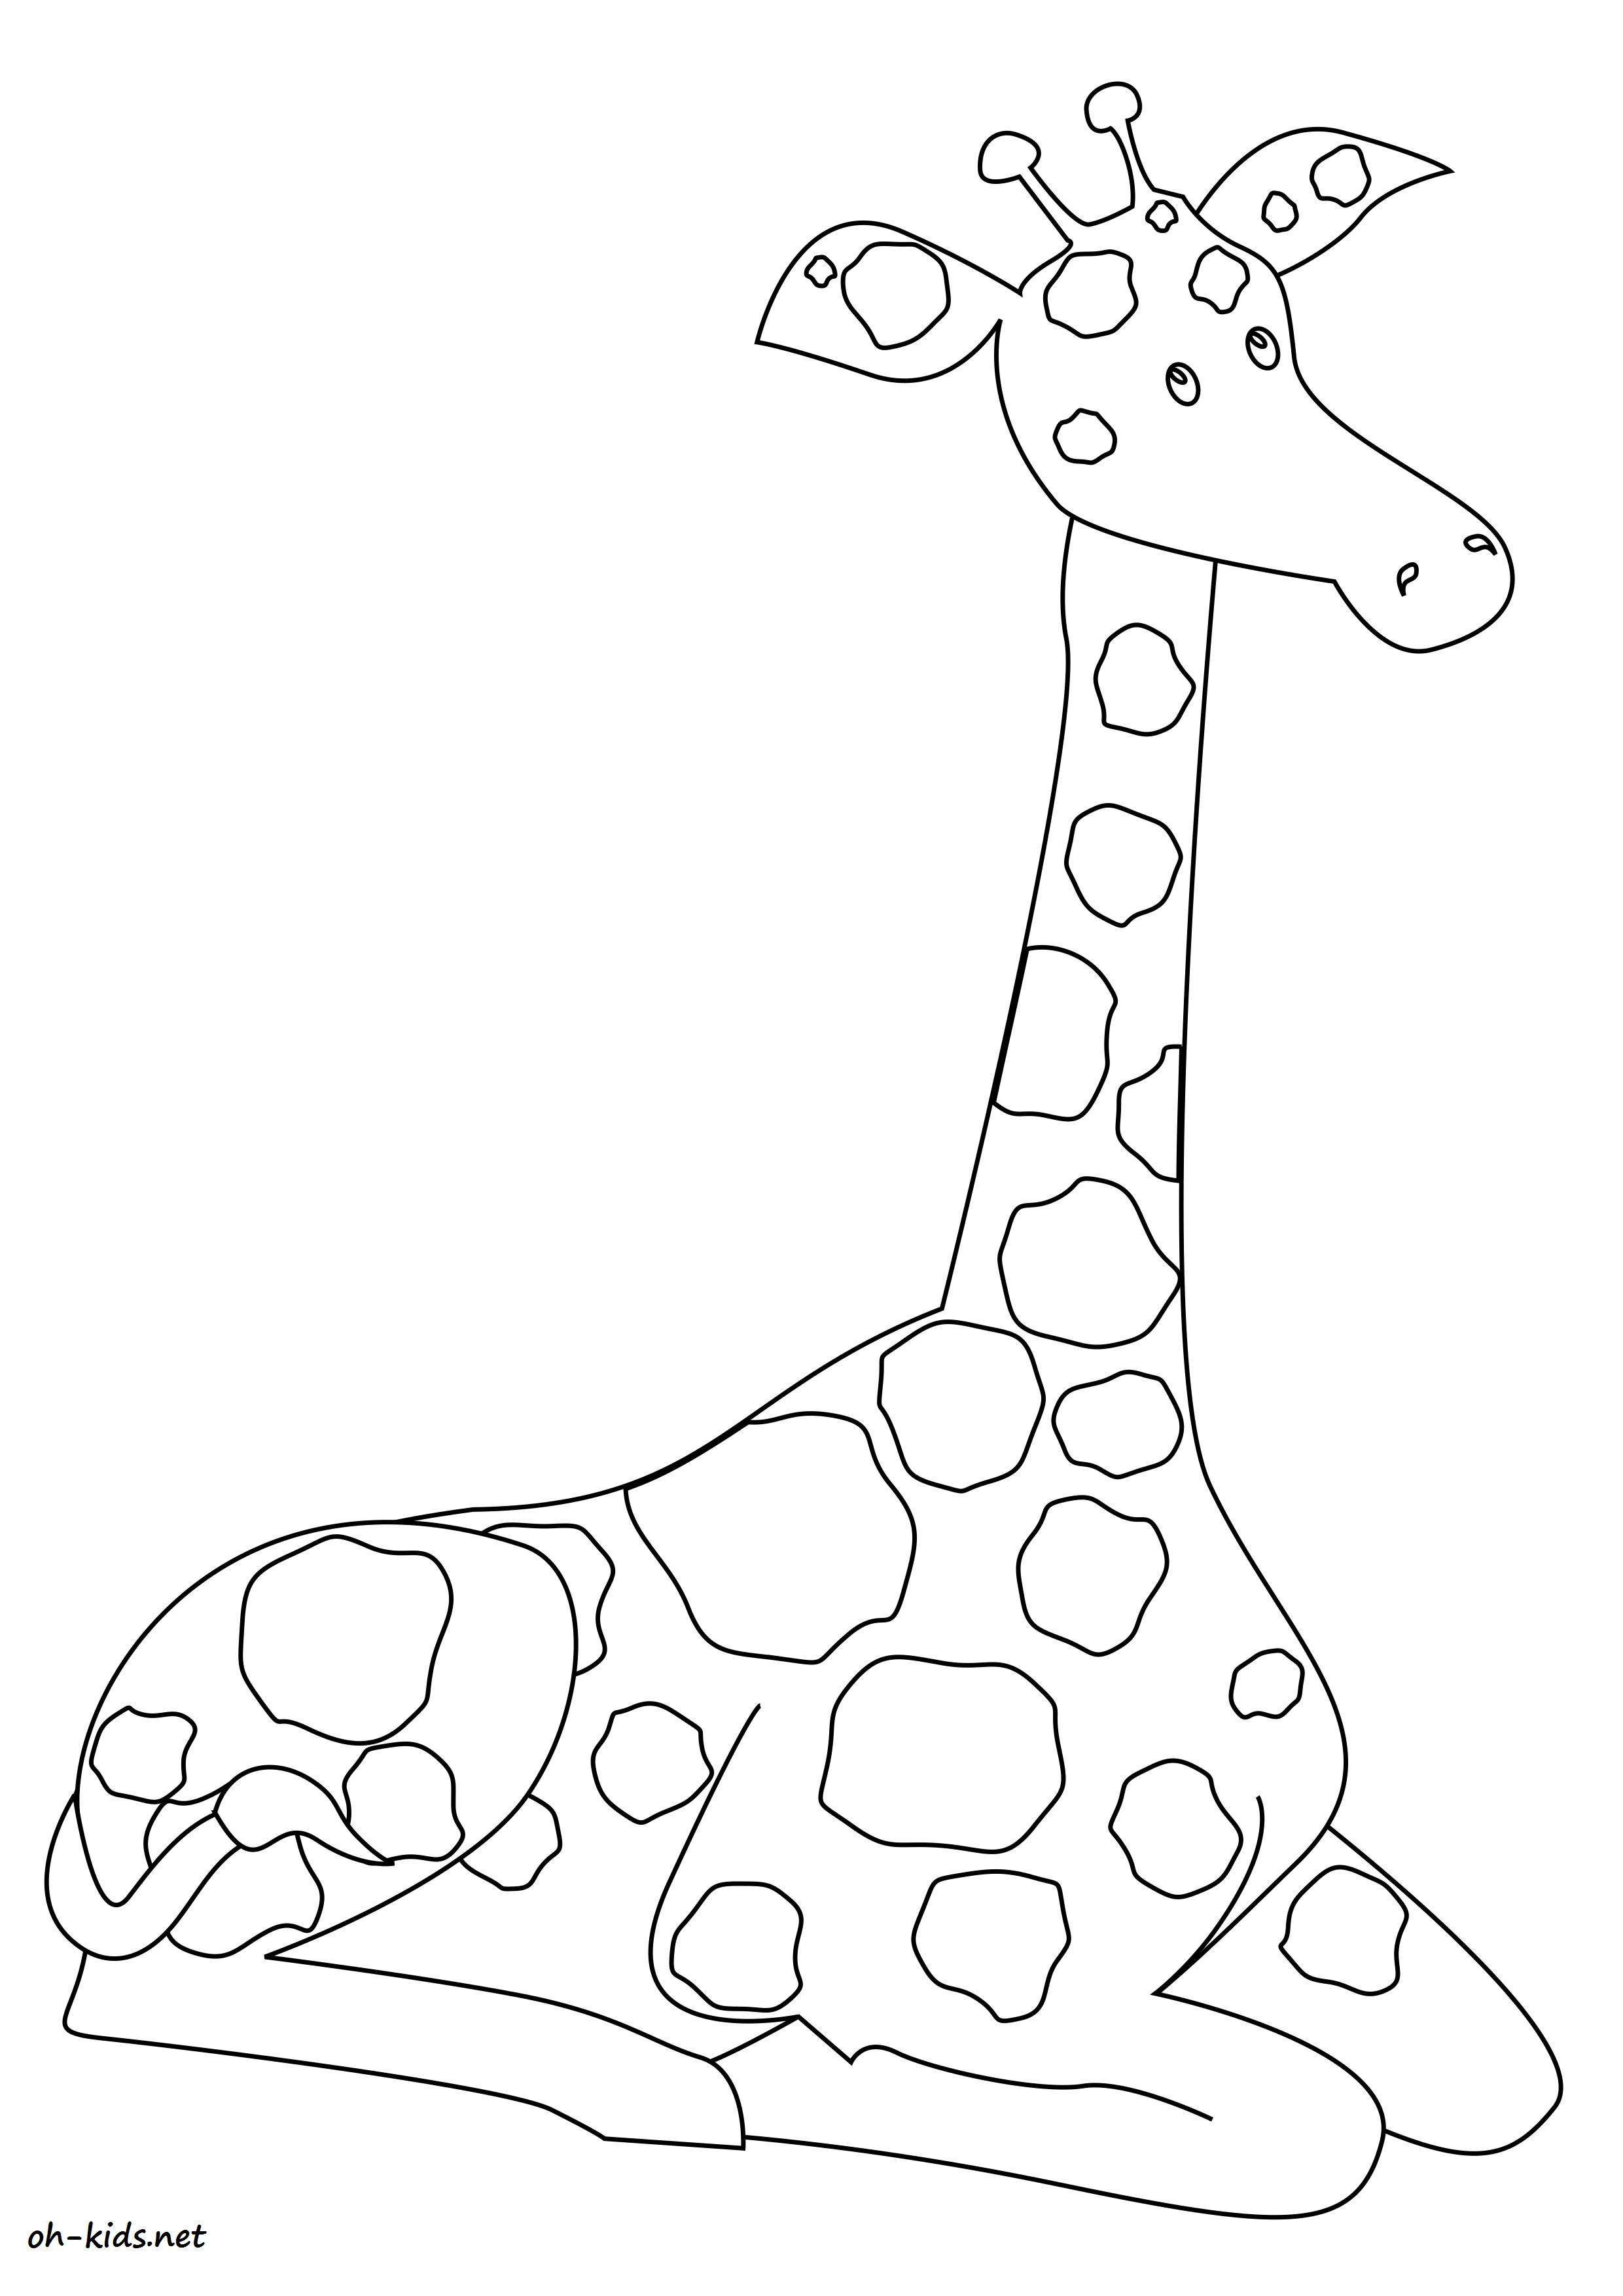 Coloriage Girafe - Page 2 Of 2 - Oh Kids Fr avec Coloriage Girafe A Imprimer Gratuit